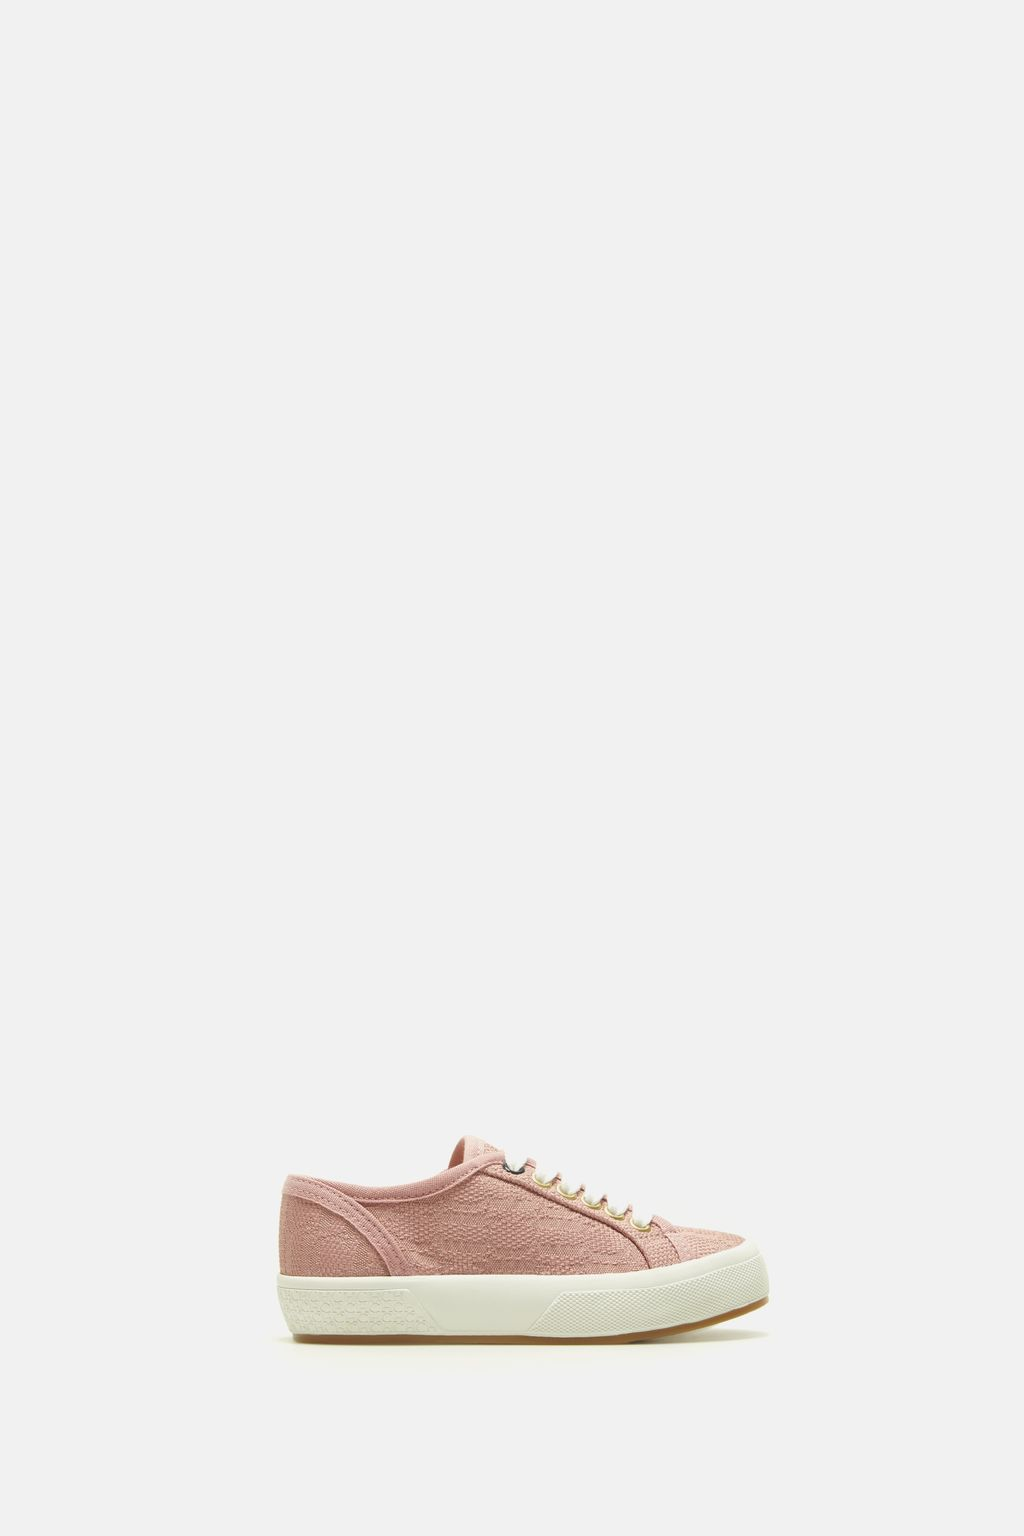 CH canvas Bamba sneakers